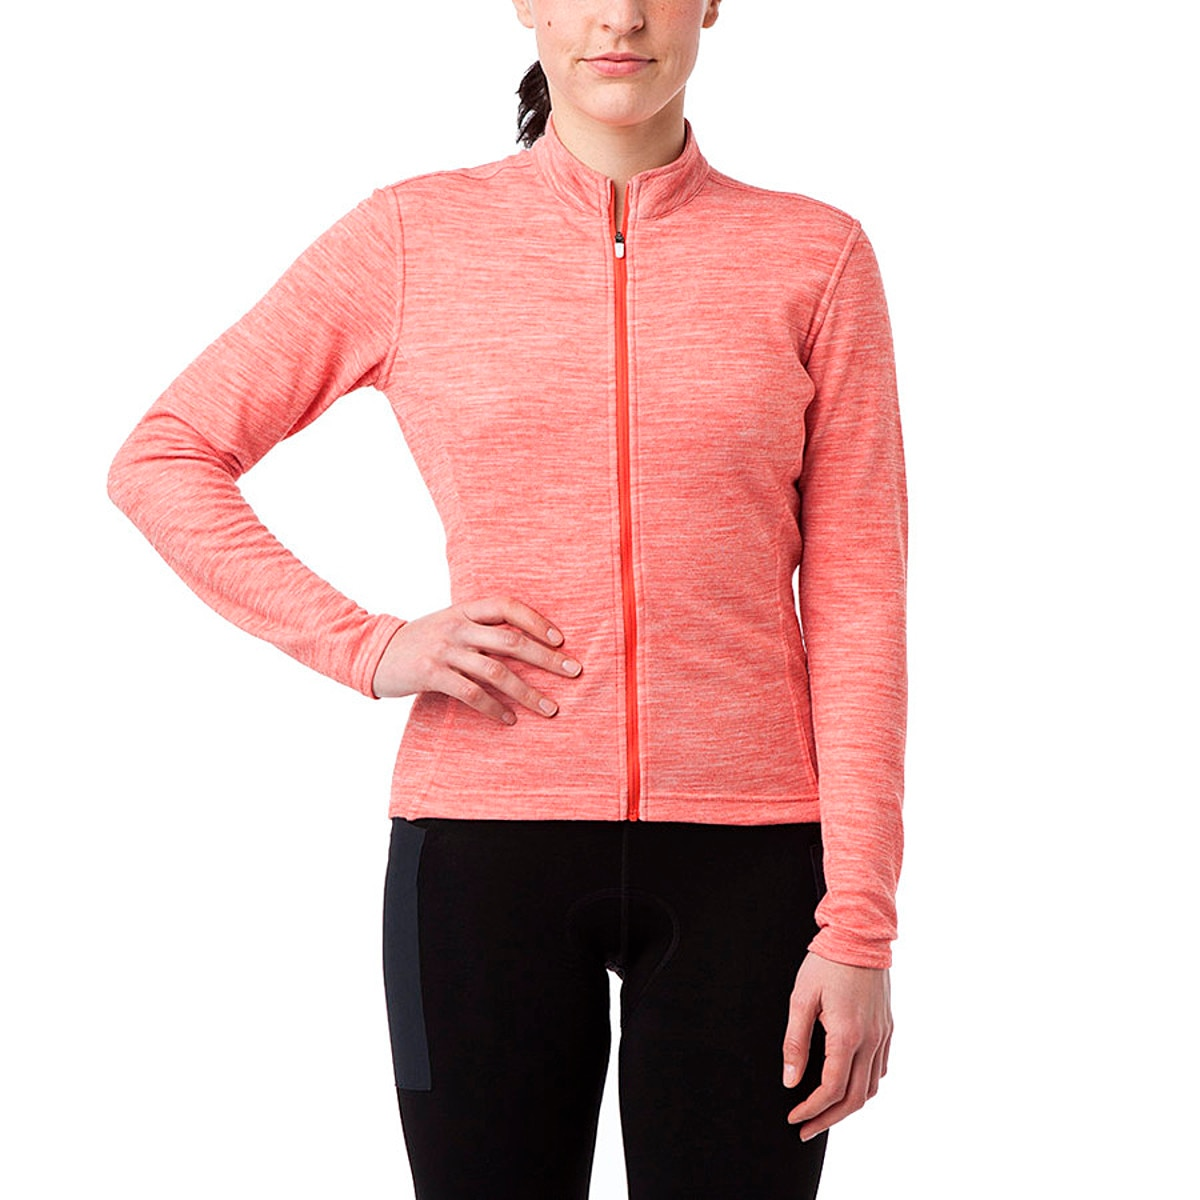 Giro Ride Full Zip Jersey Long Sleeve Women's